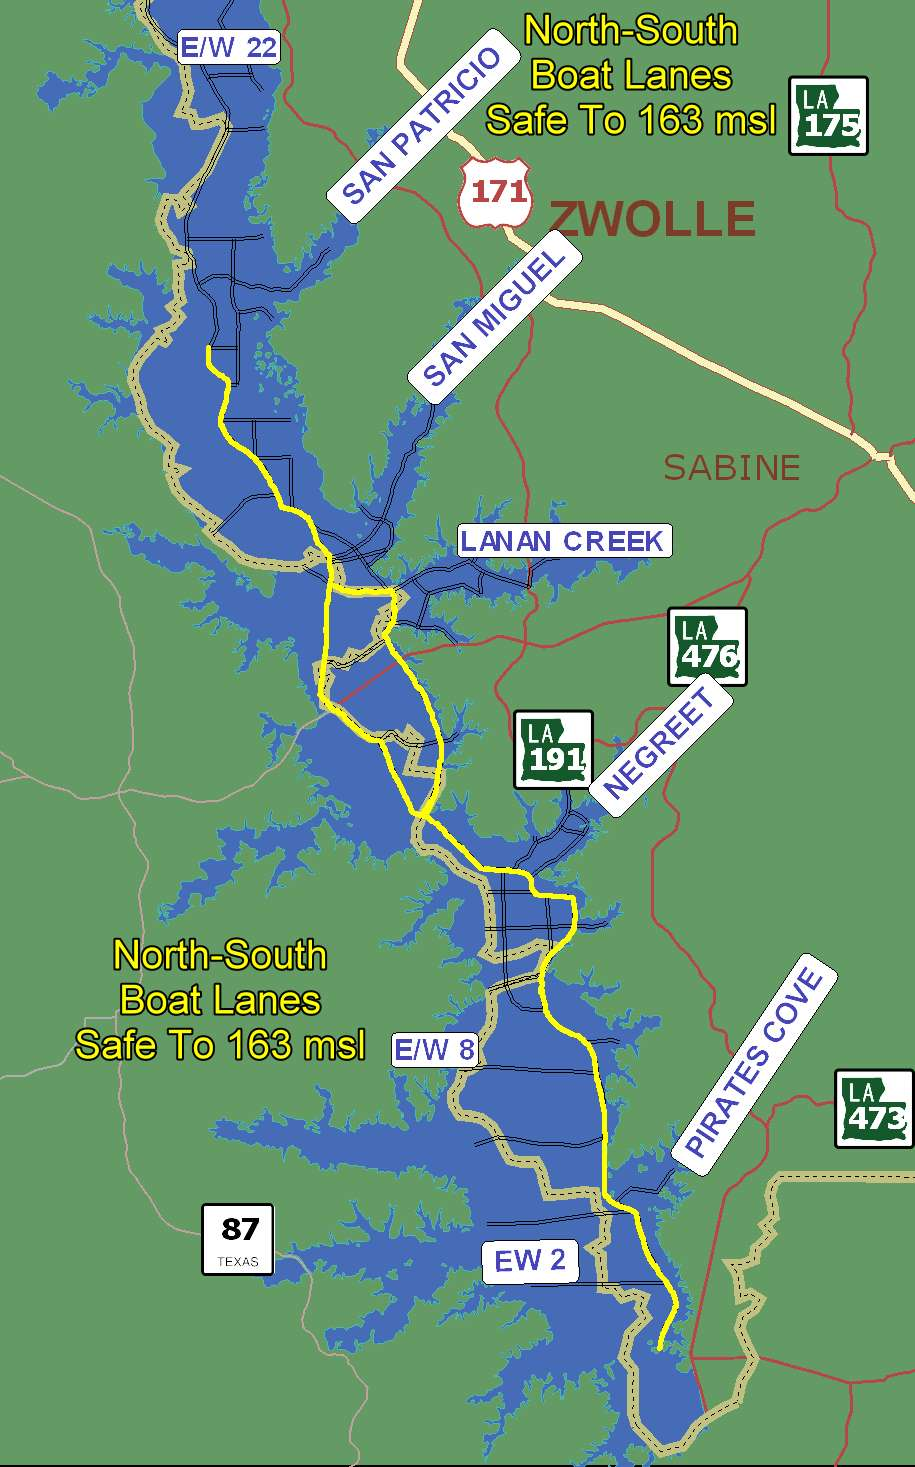 Toledo Bend Map Map of Toledo Bend Boat Lanes – Toledo Bend Lake